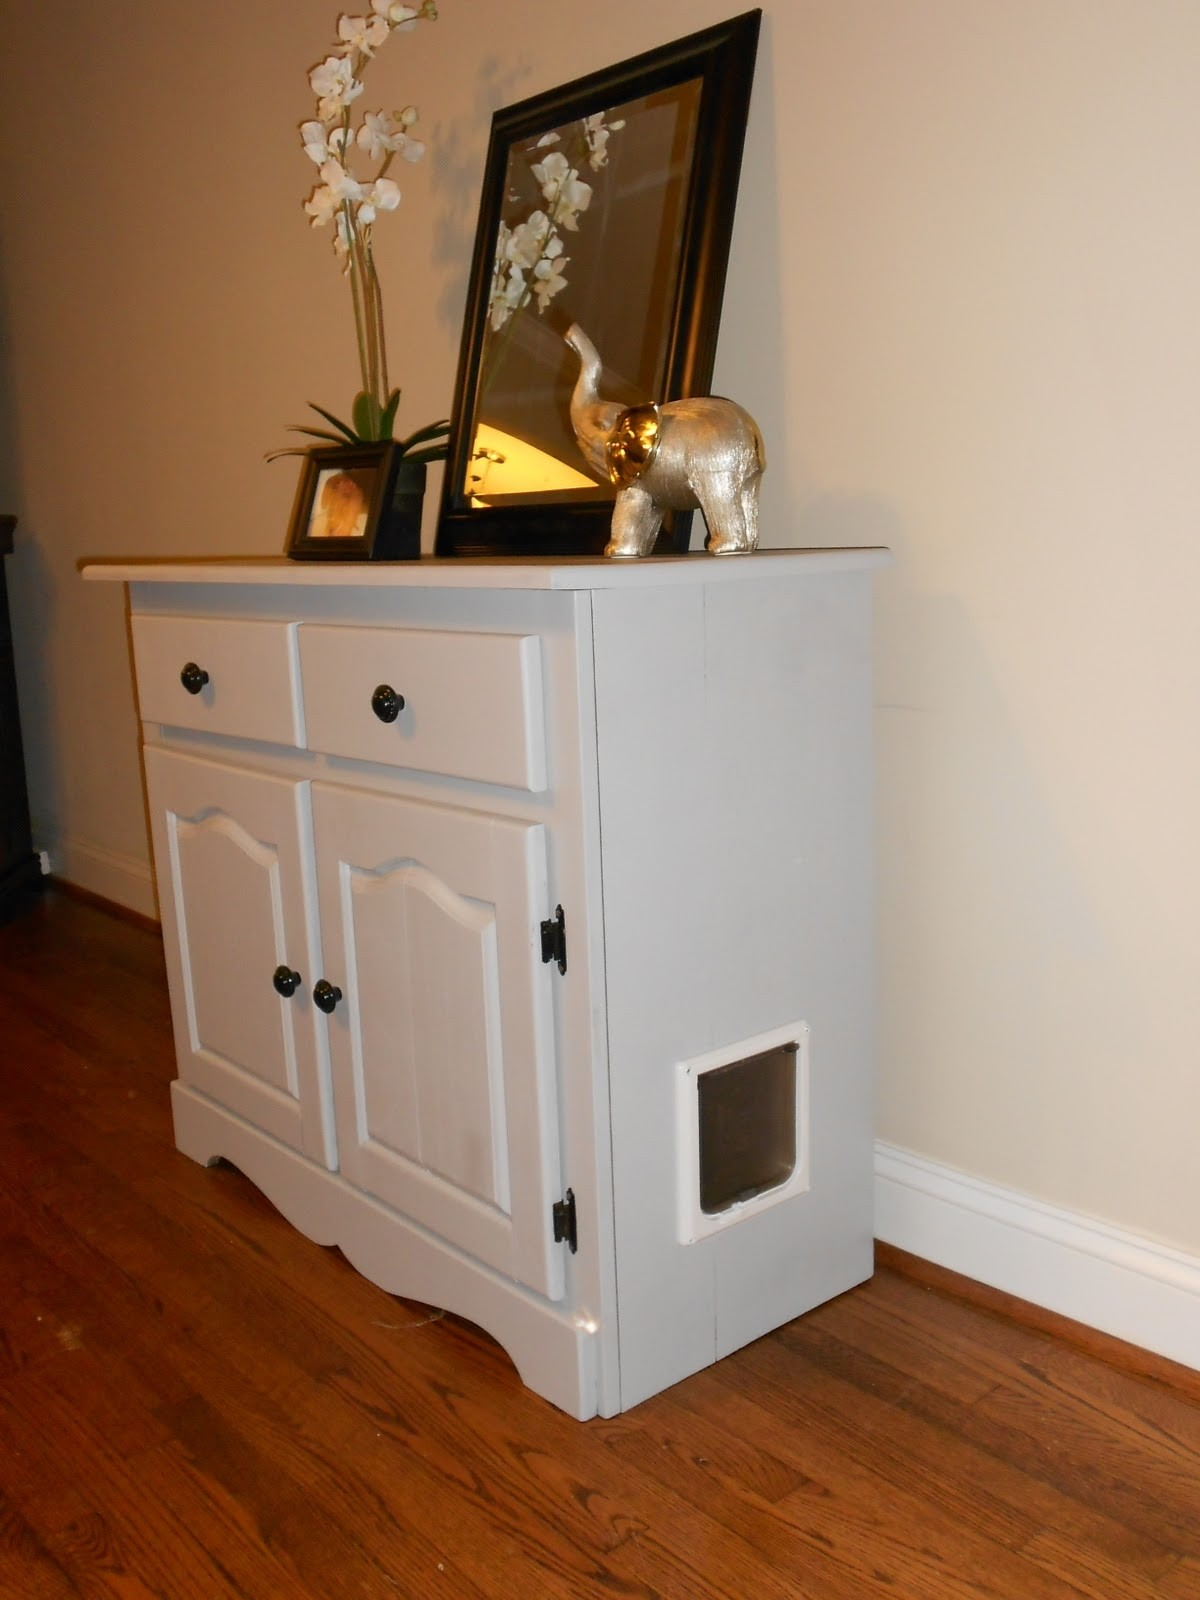 Charmant Cat Litter Box Cabinet With Drawers 5